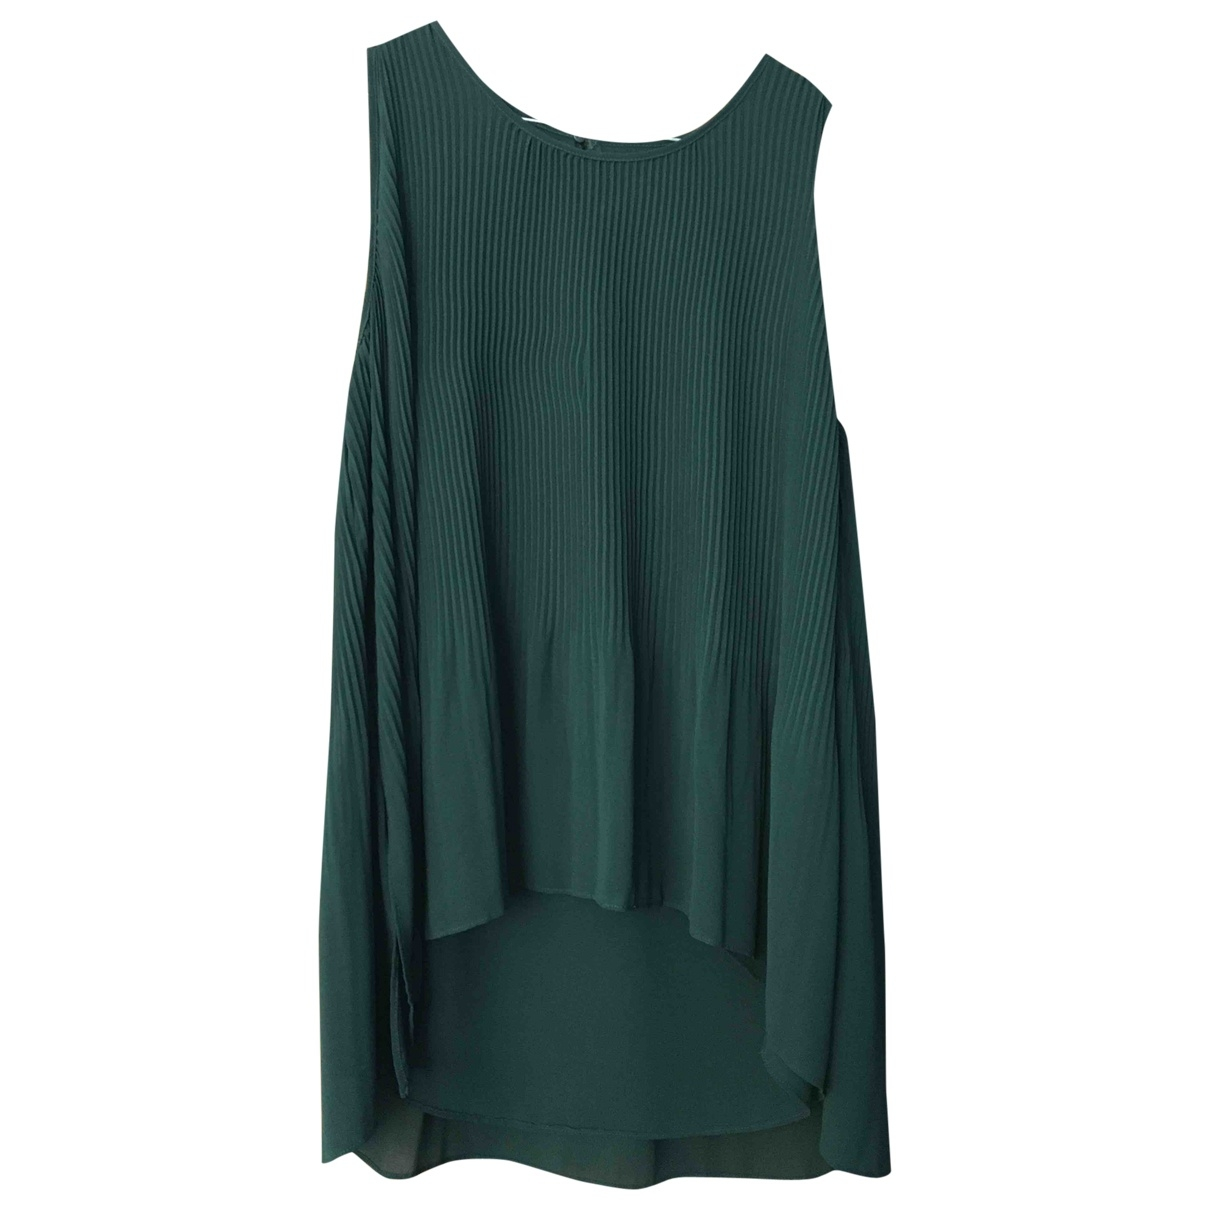 Zara \N Green  top for Women M International